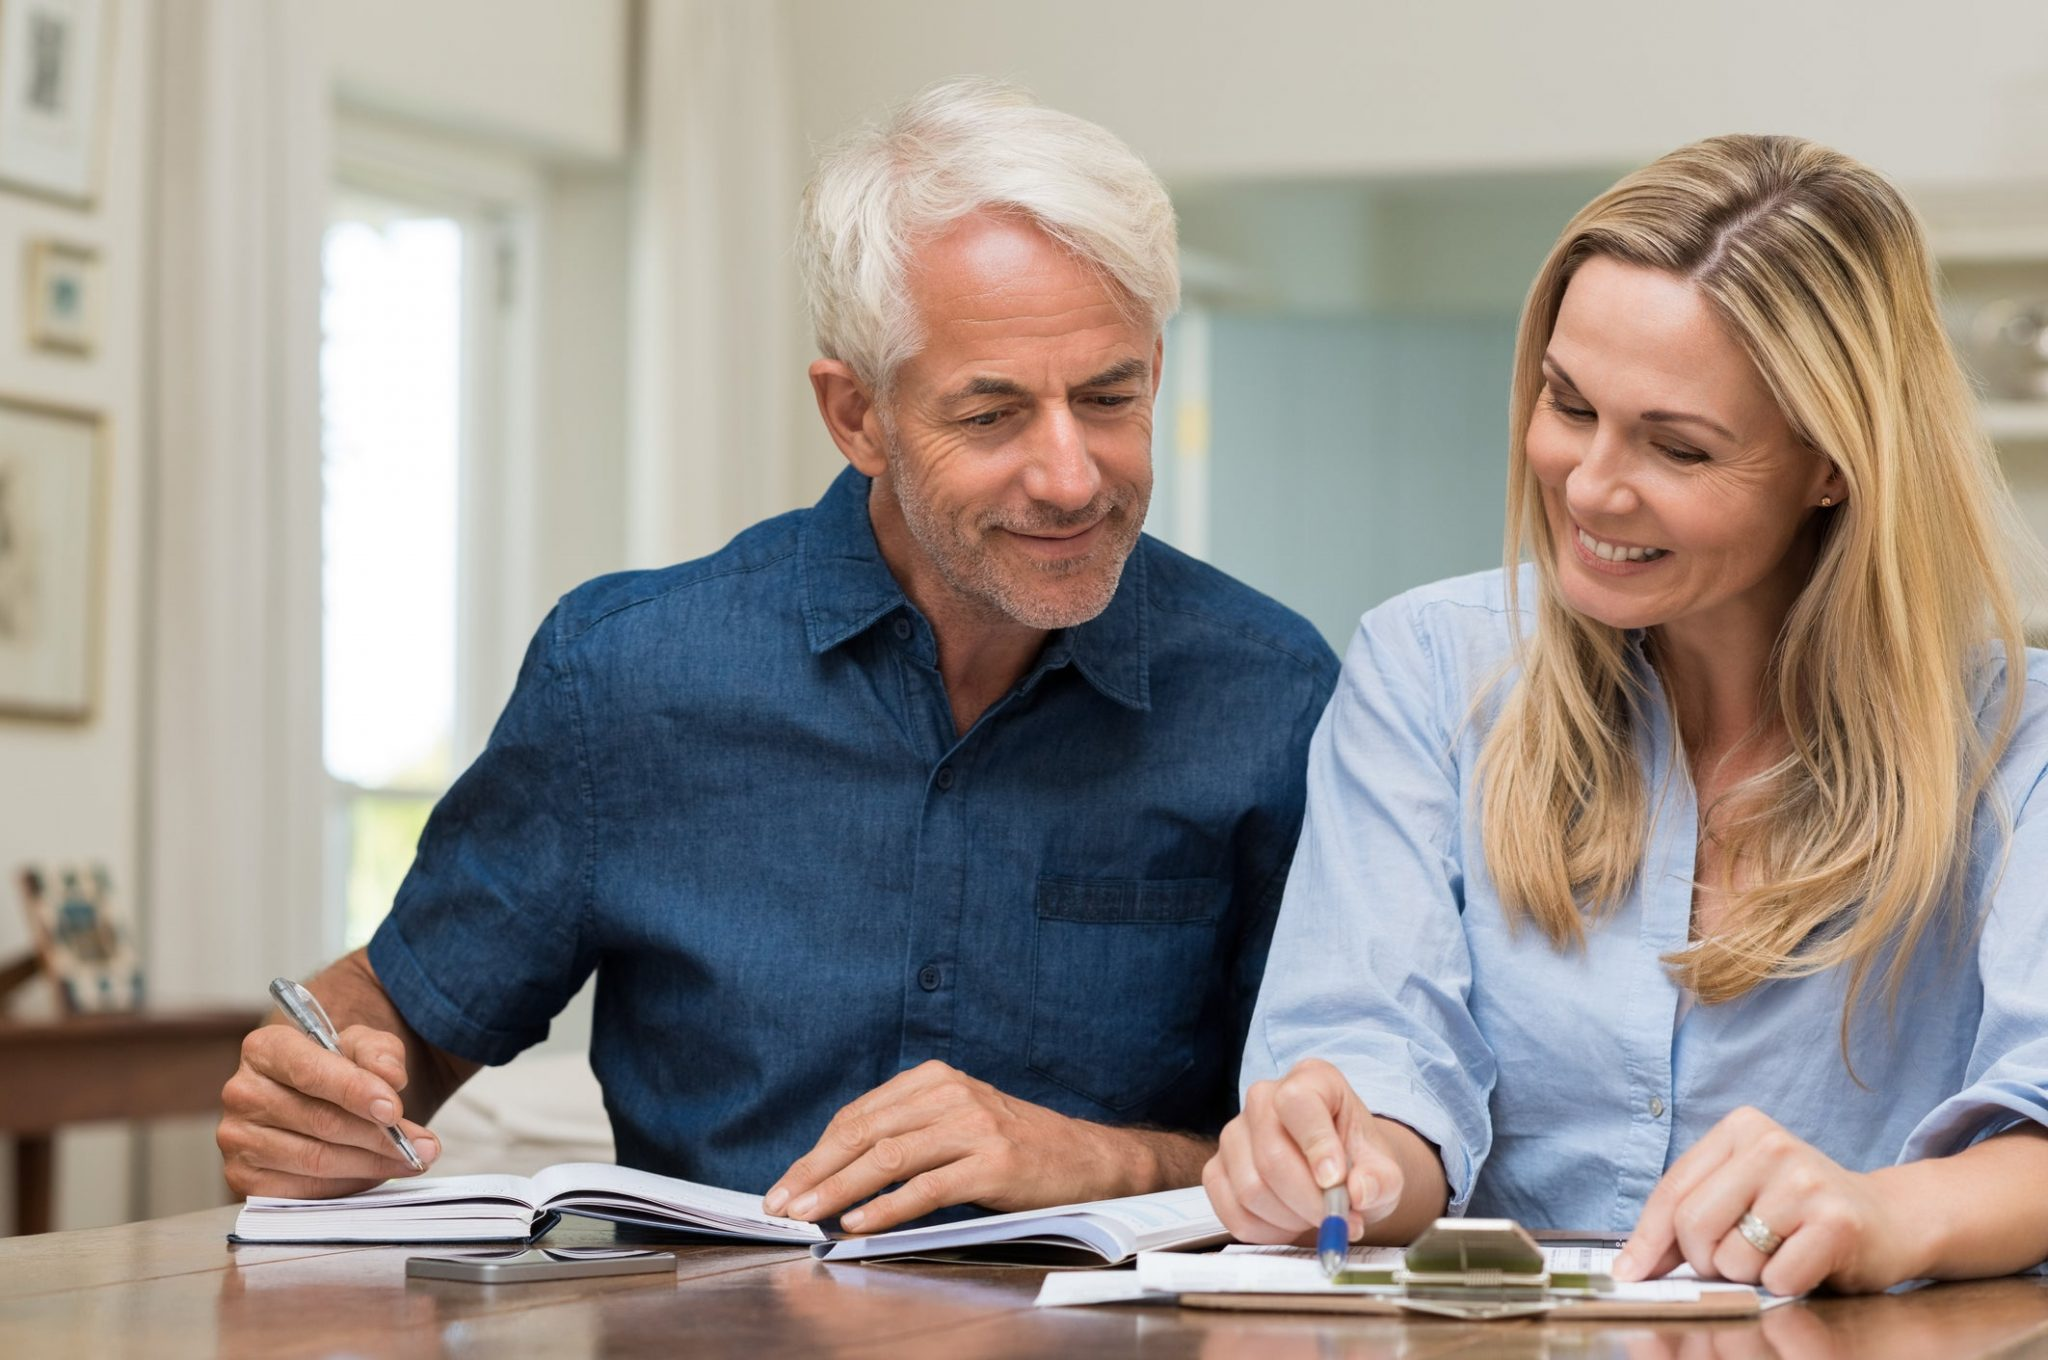 mature-couple-discussing-finances-with-pens-and-paper